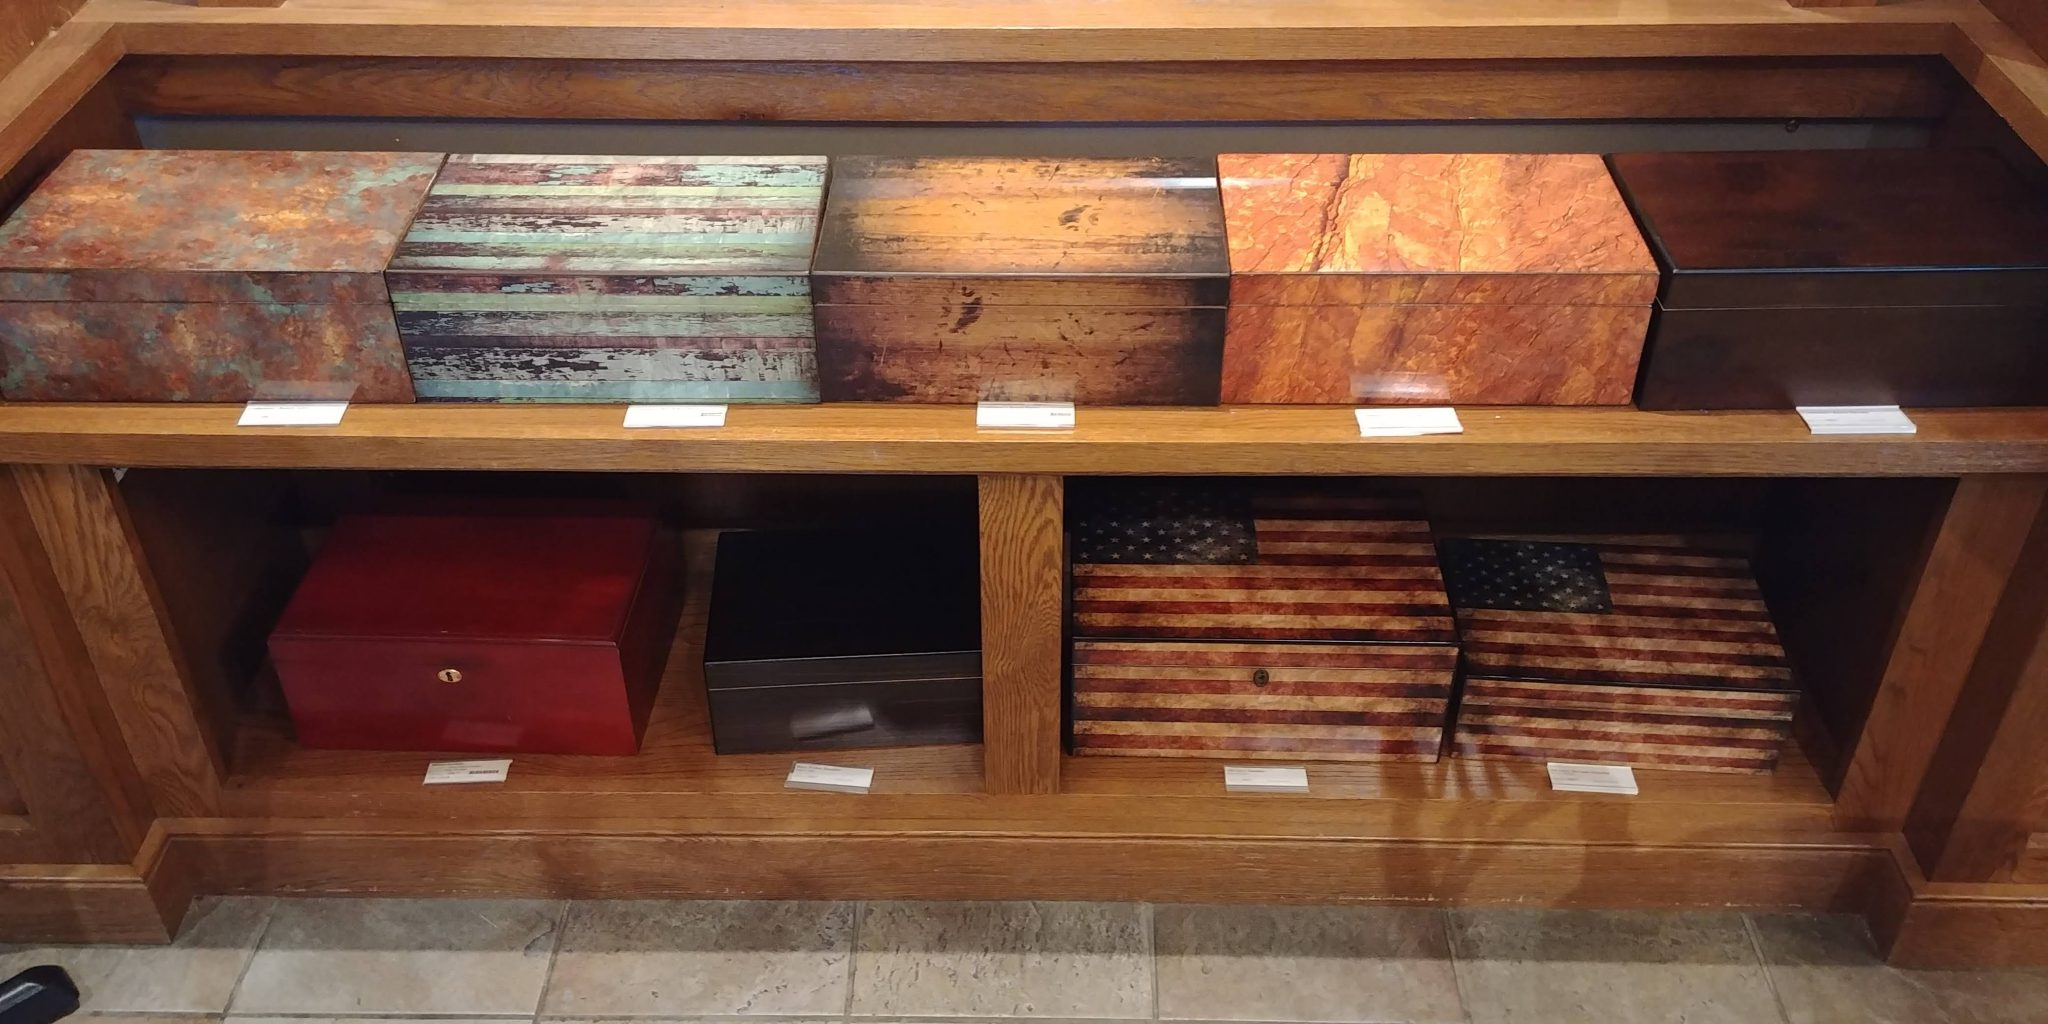 5 Tips for Buying Your First Humidor humidors on sale at Famous Smoke Shop